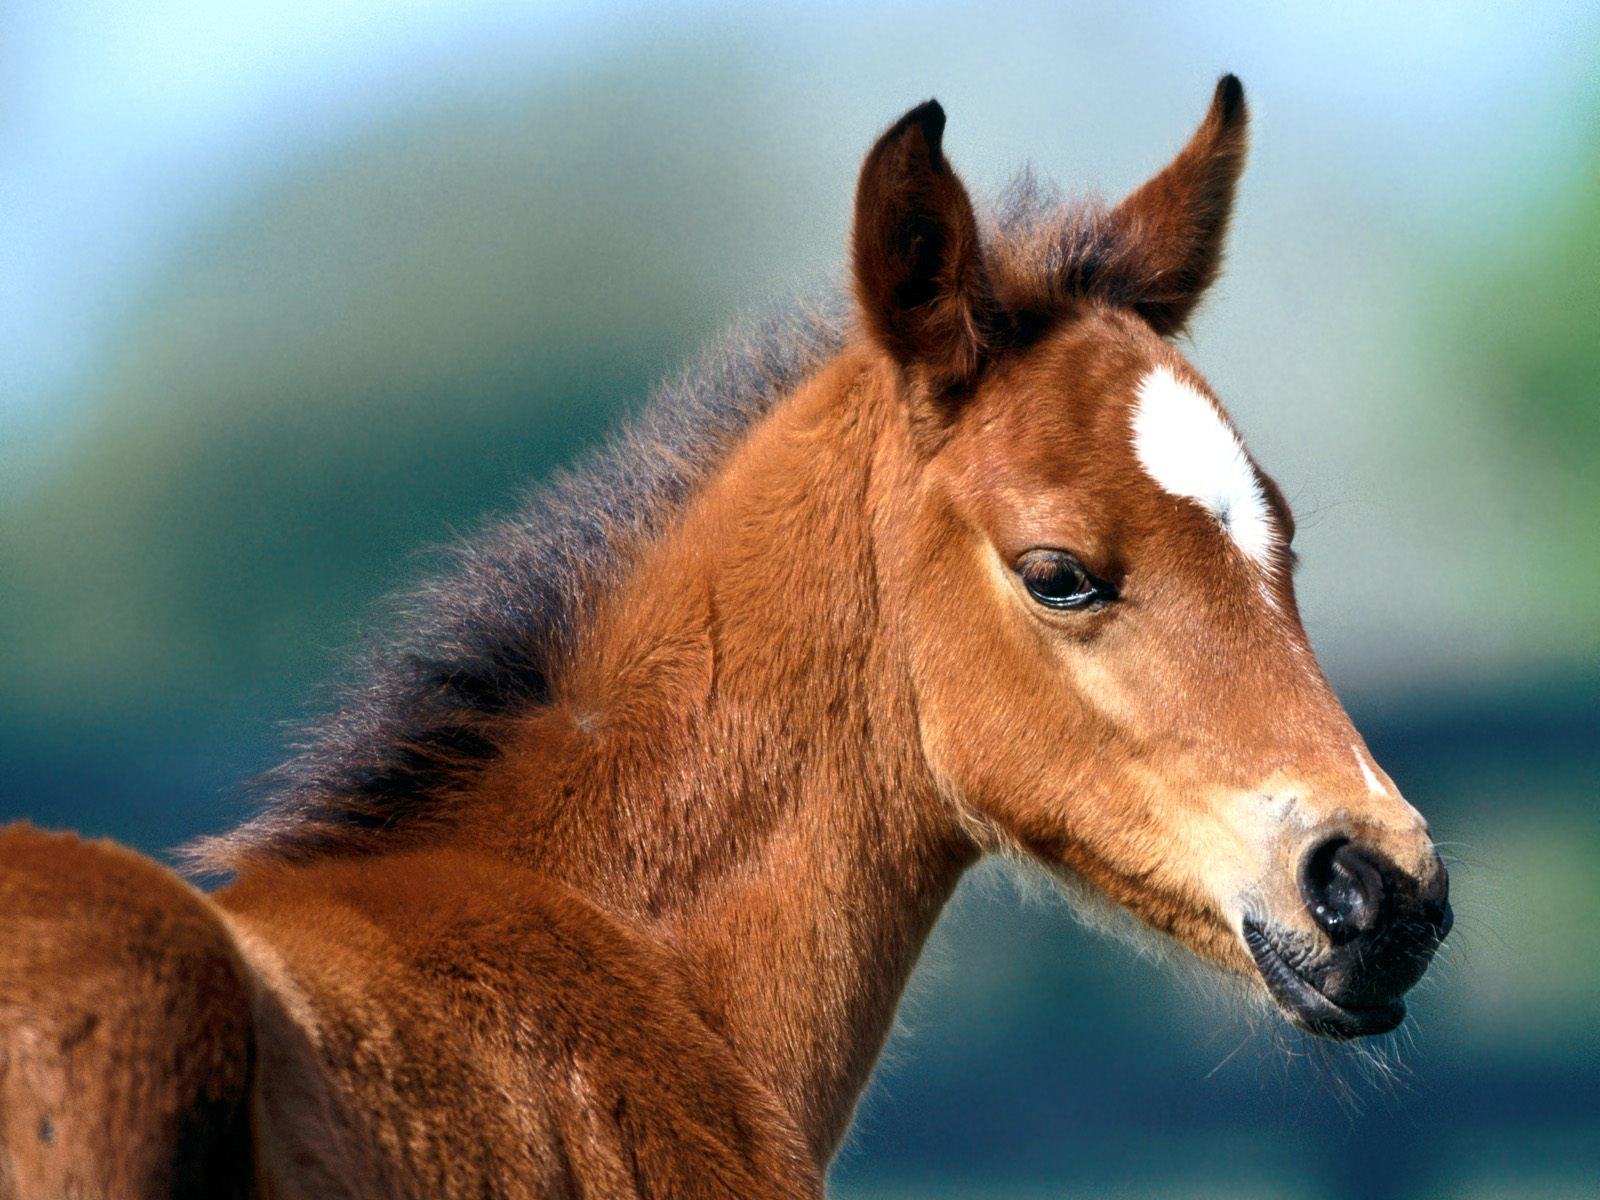 Horse And Foal Wallpaper